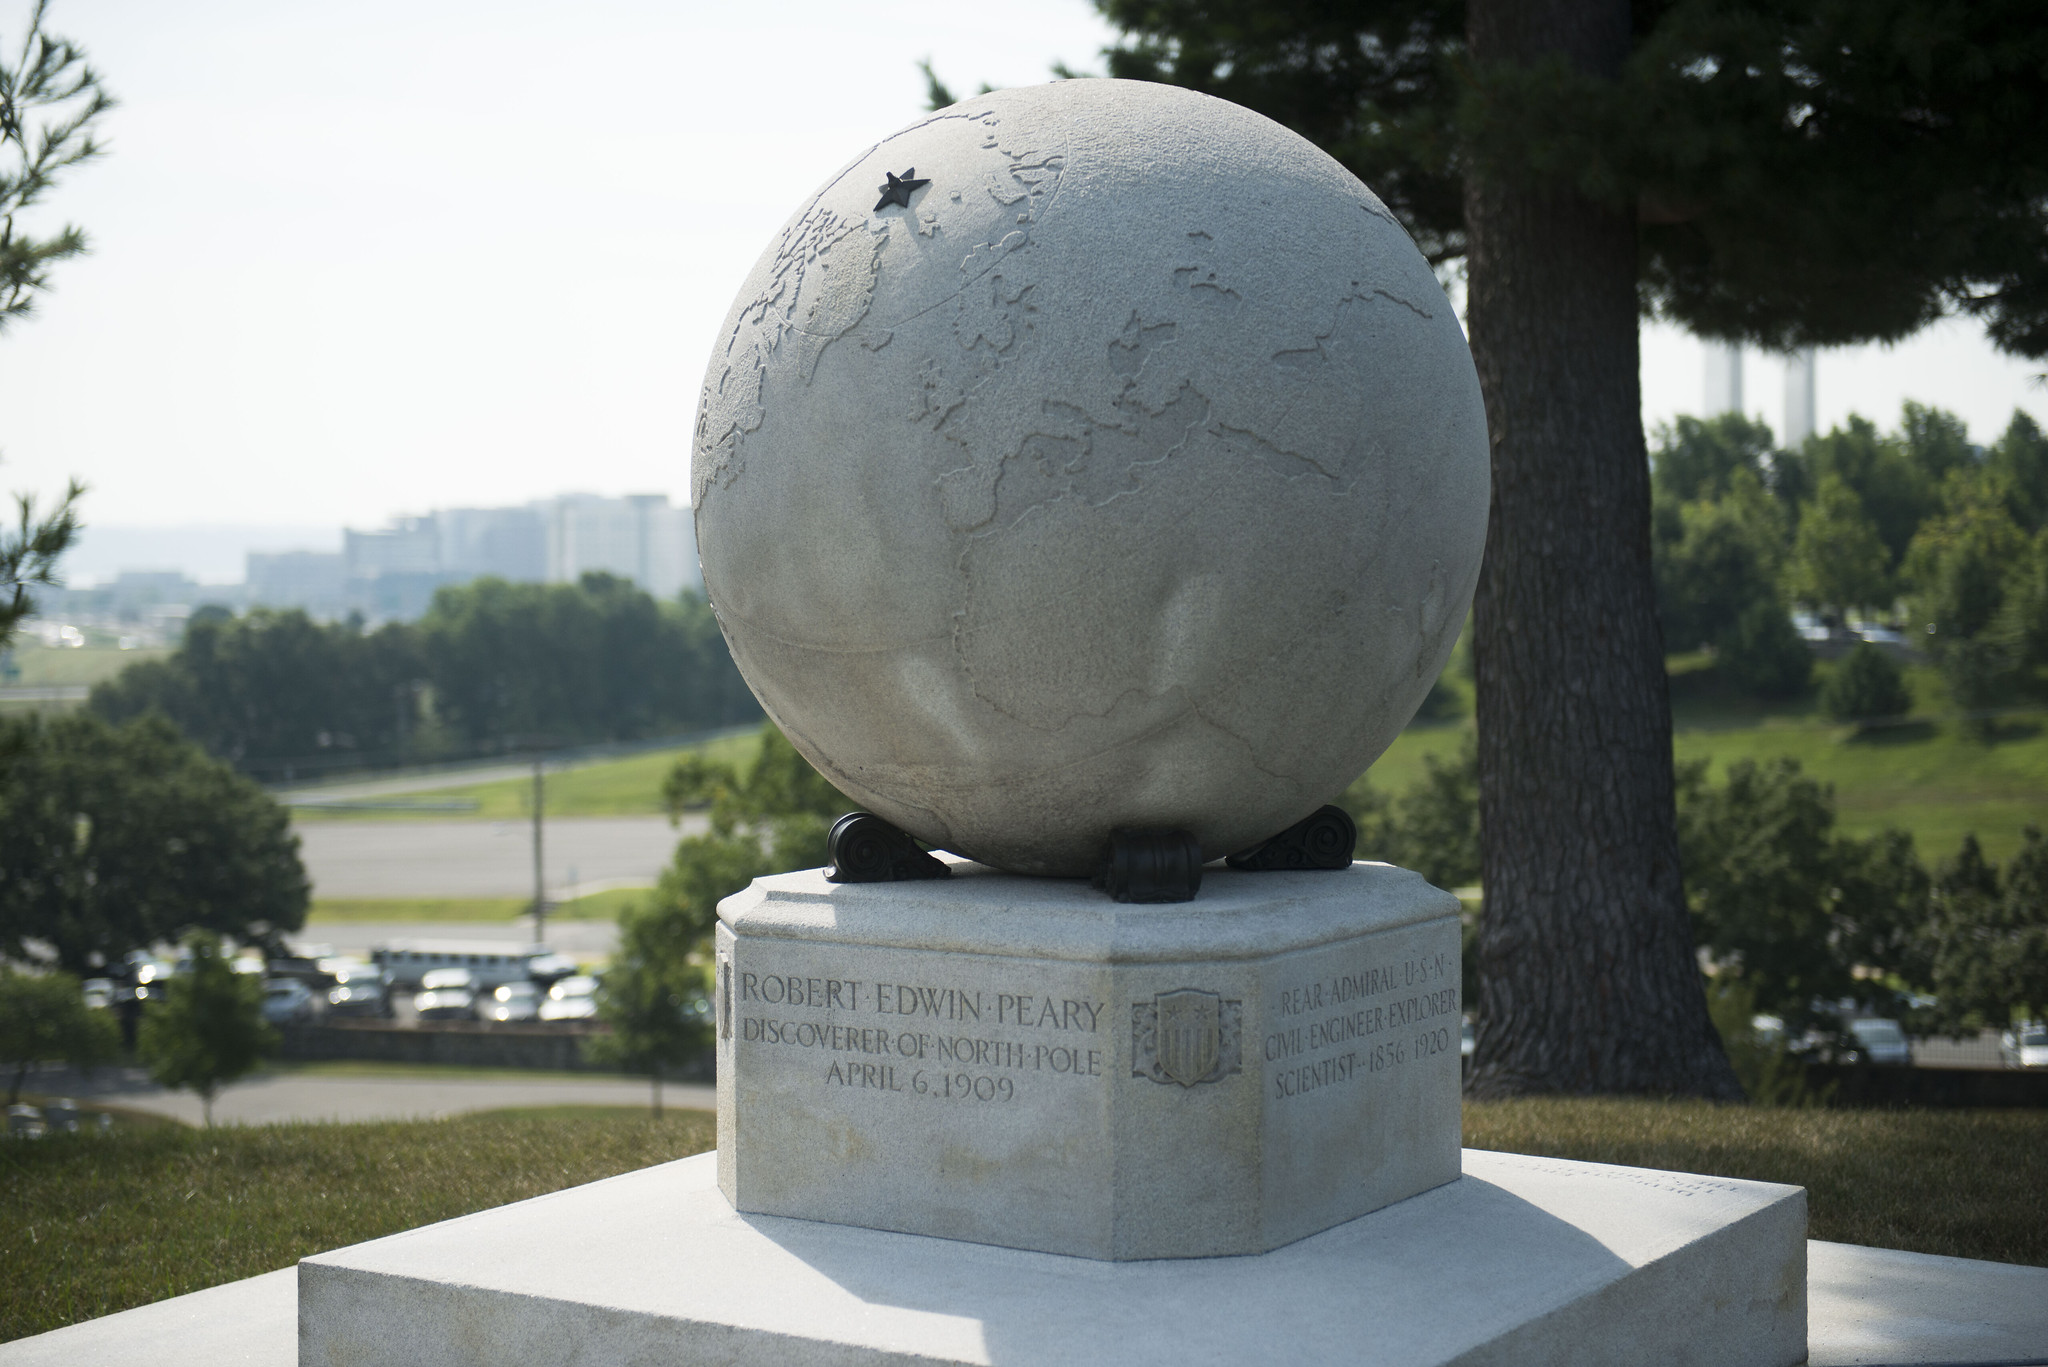 A large white marble globe, with a bronze star marking the North Pole, stands at the gravesite of famed Arctic explorer Robert Peary